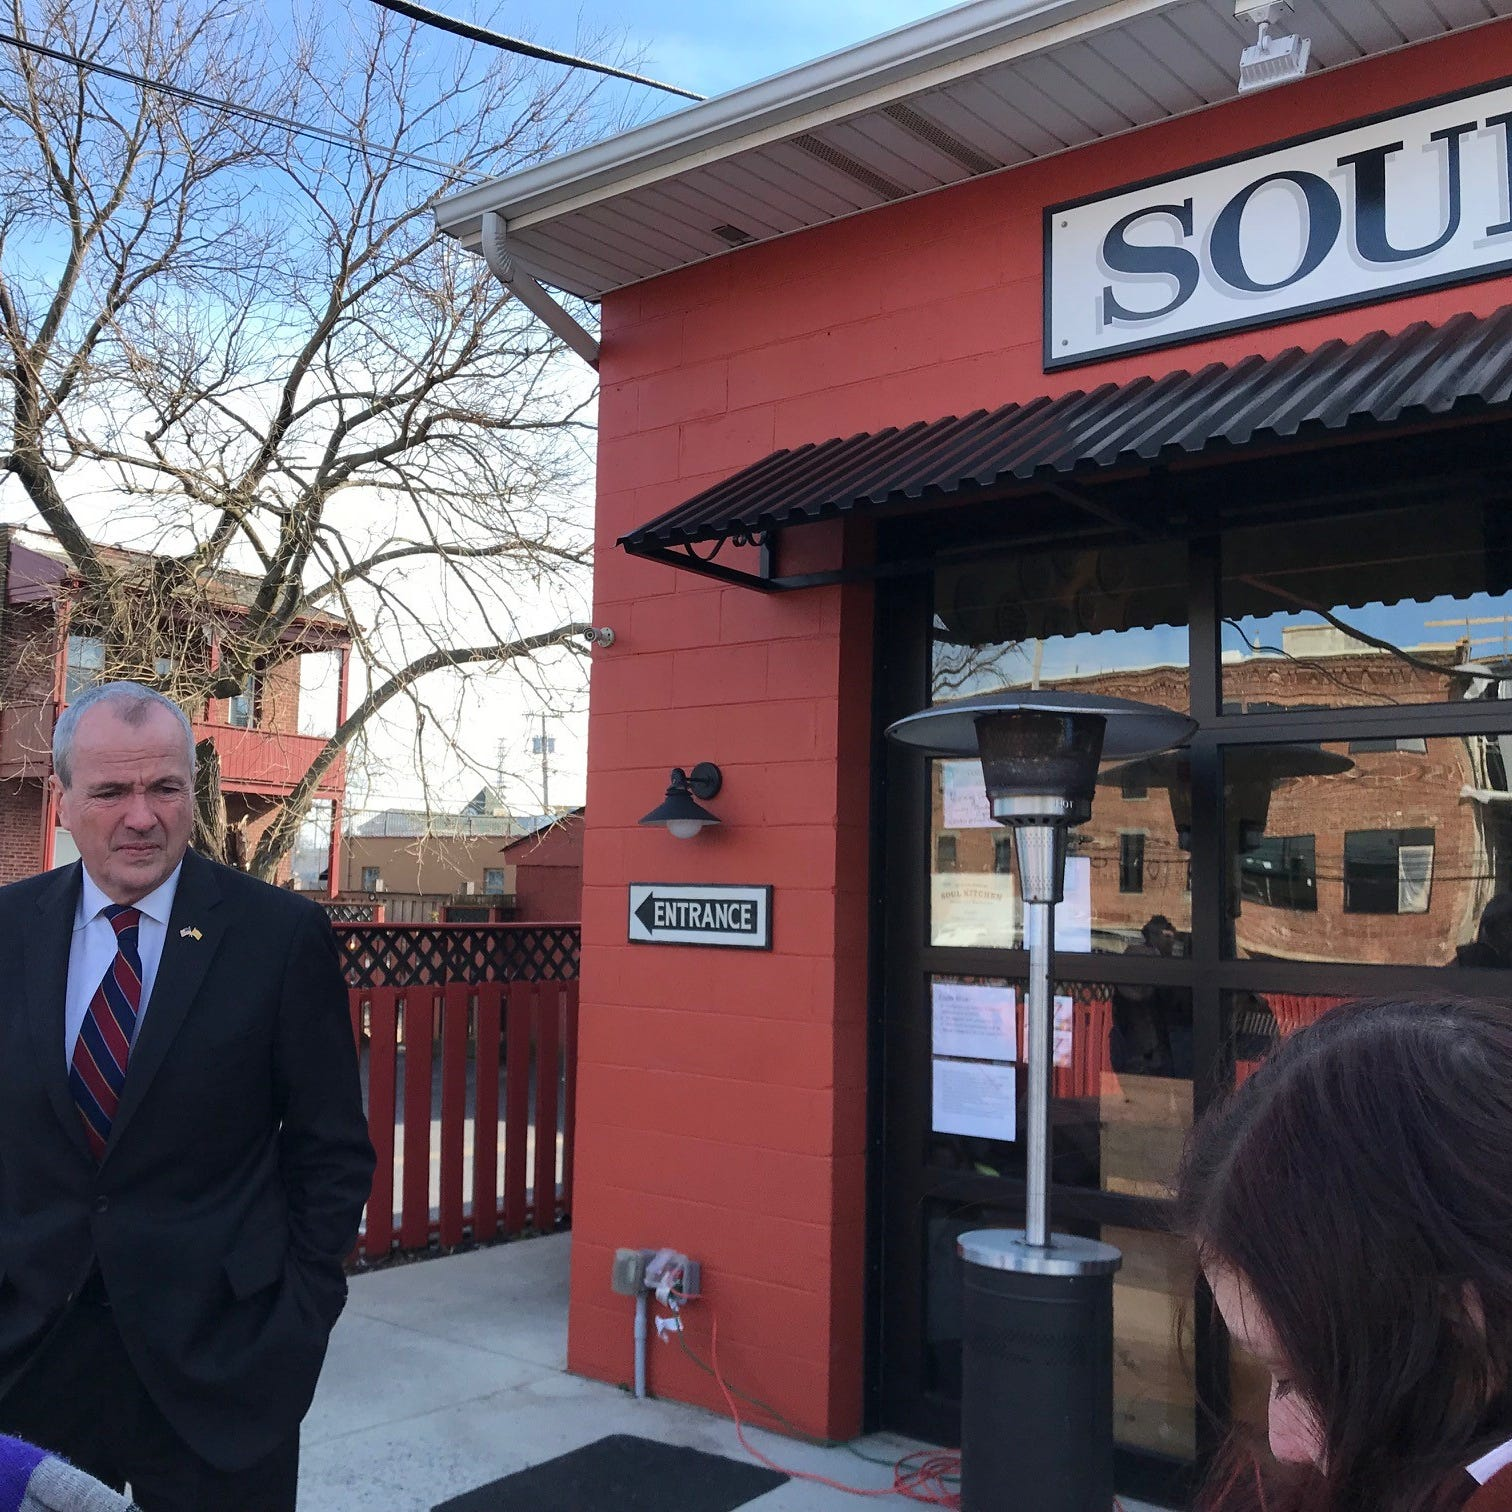 Bon Jovi Soul Kitchen: Gov. Phil Murphy visits furloughed federal workers lunch